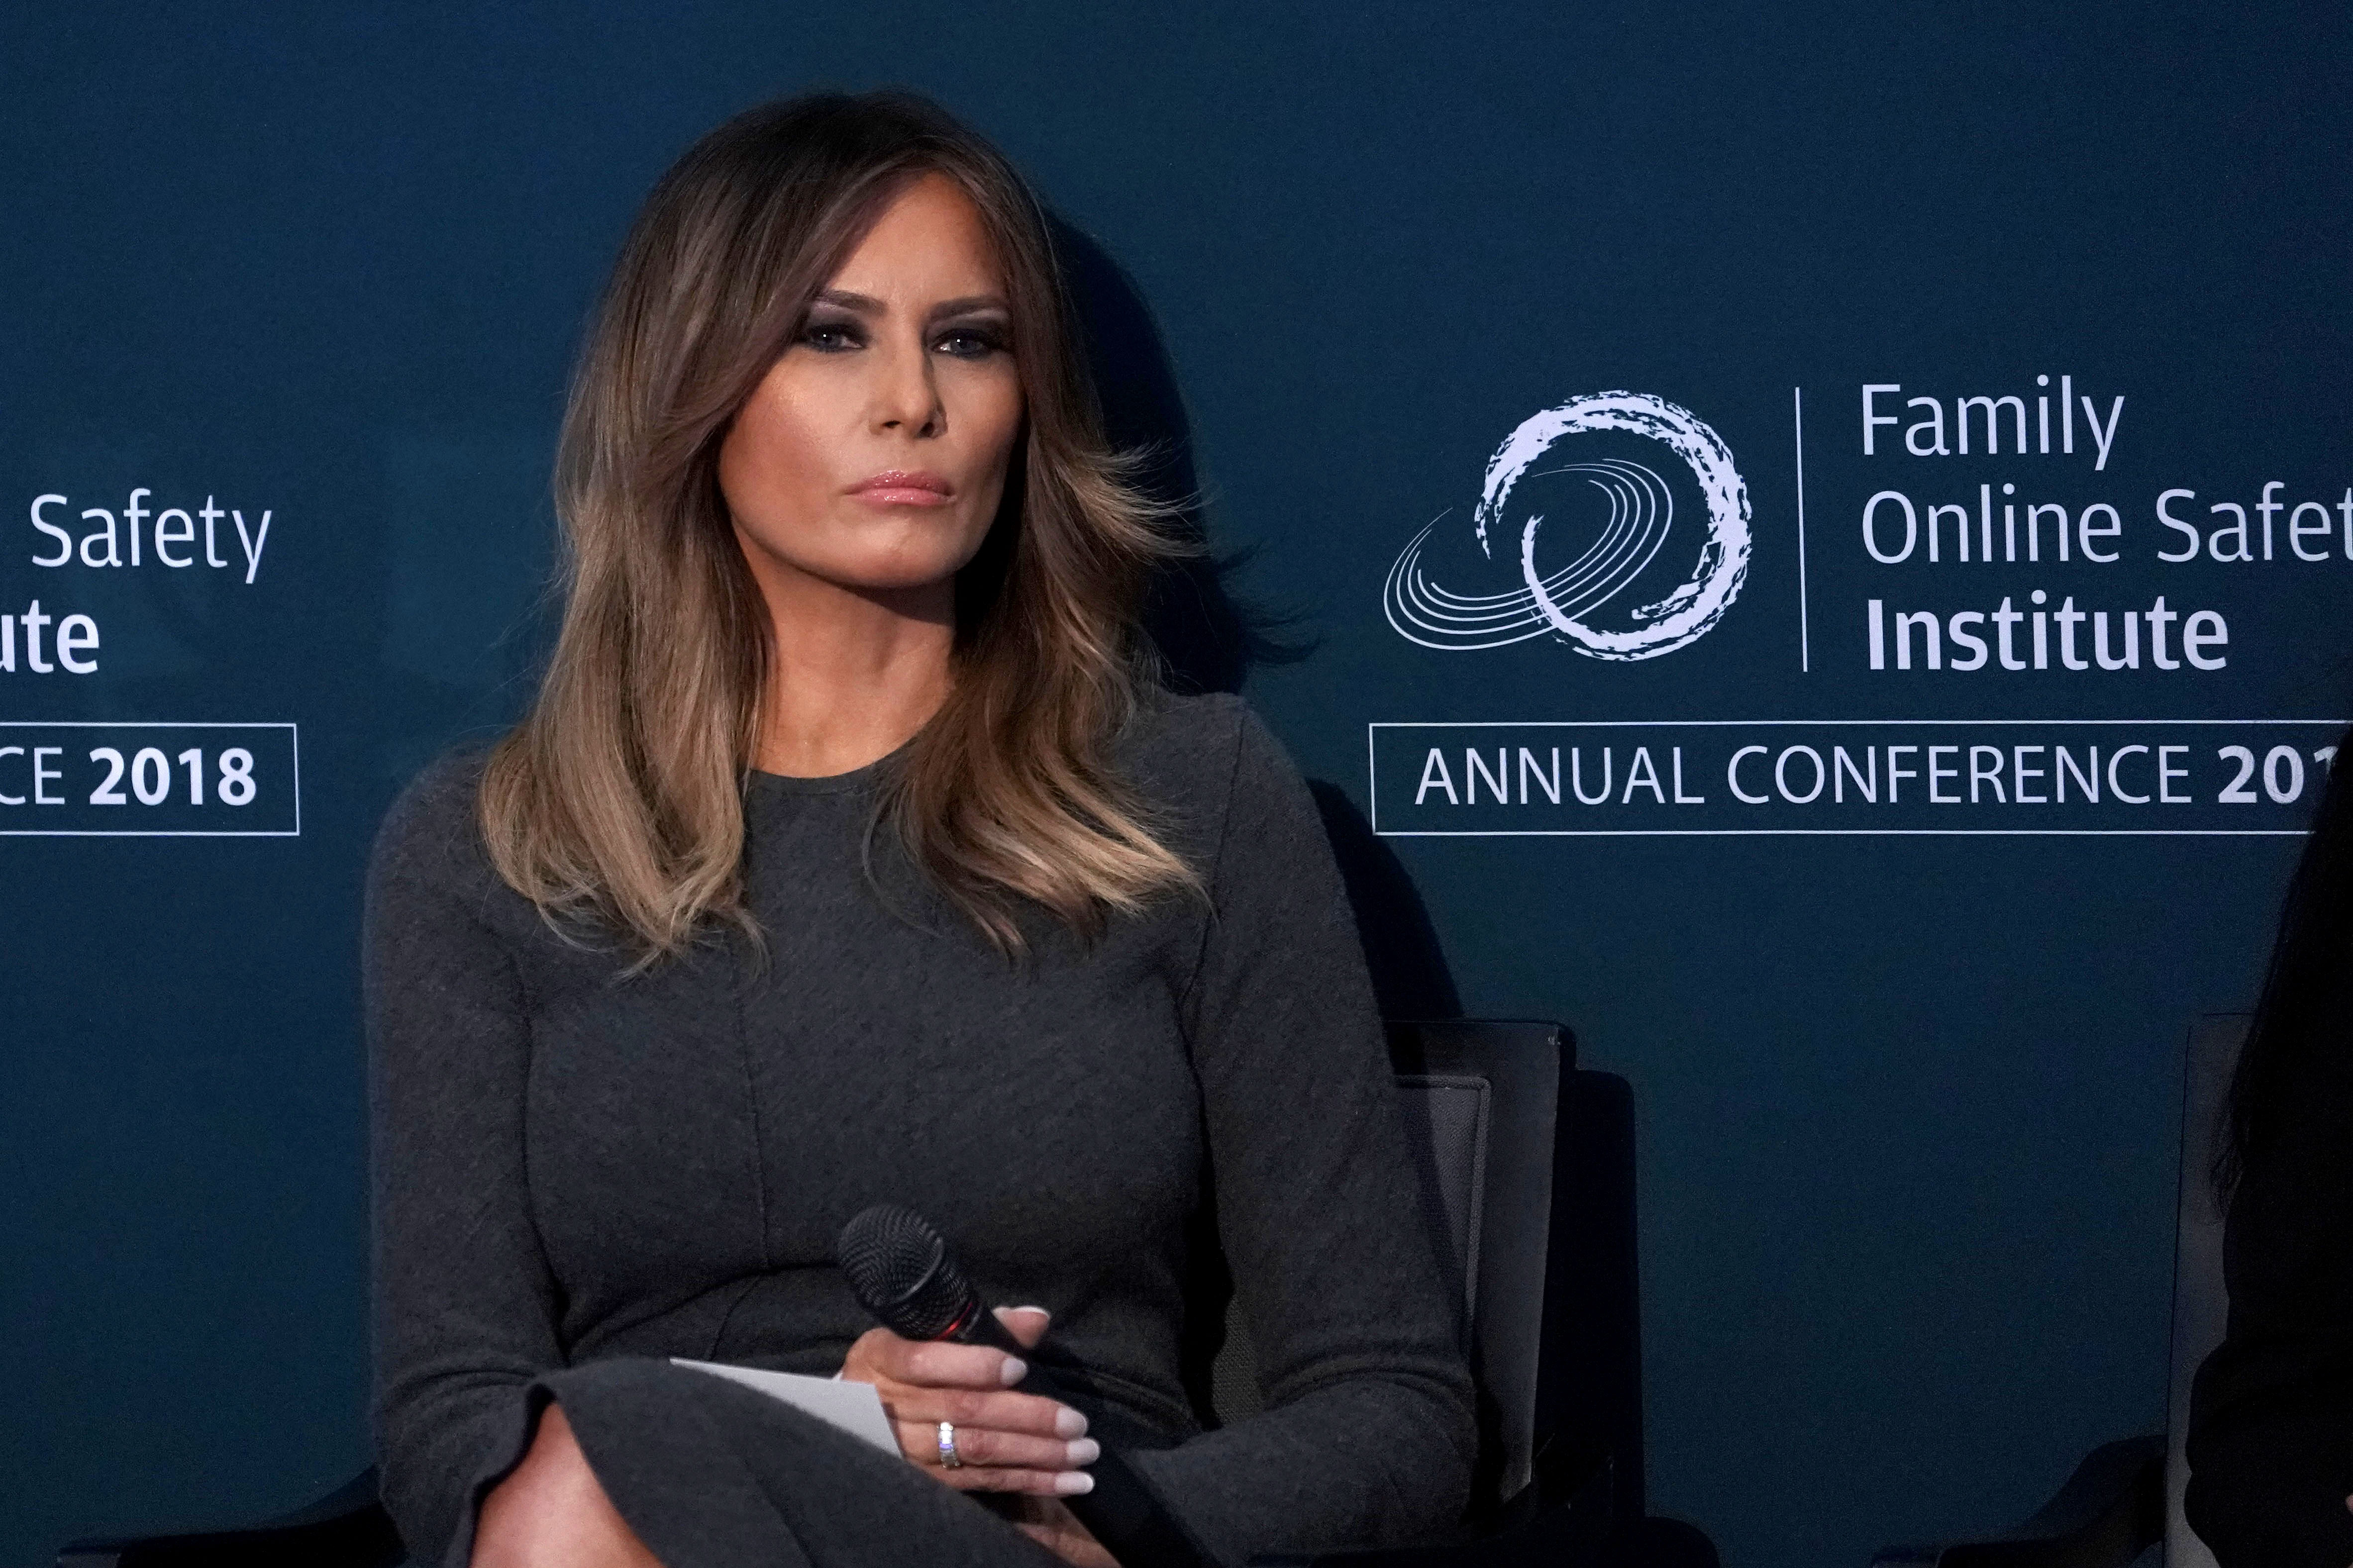 Melania blasts 'opportunists,' says media focuses too much on 'nonsense'